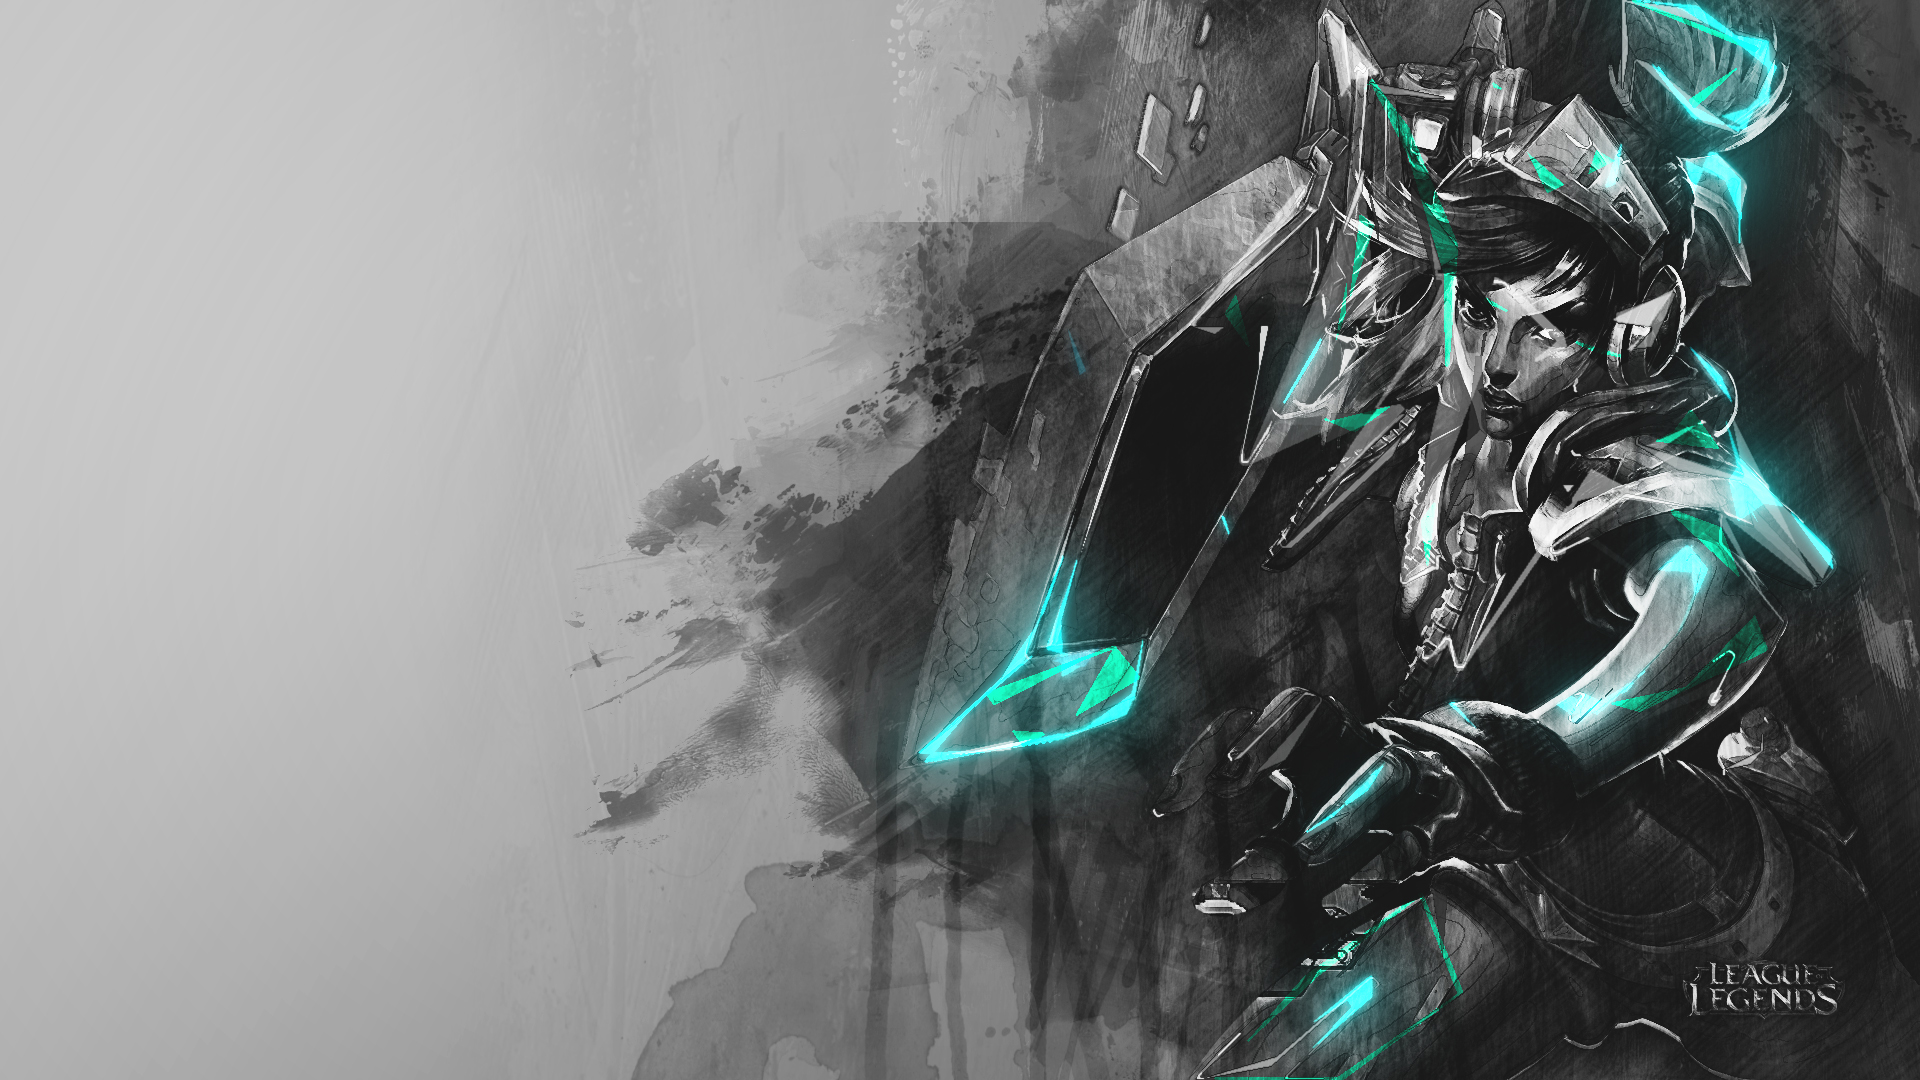 Arcade Riven Wallpaper Posted By Ryan Sellers